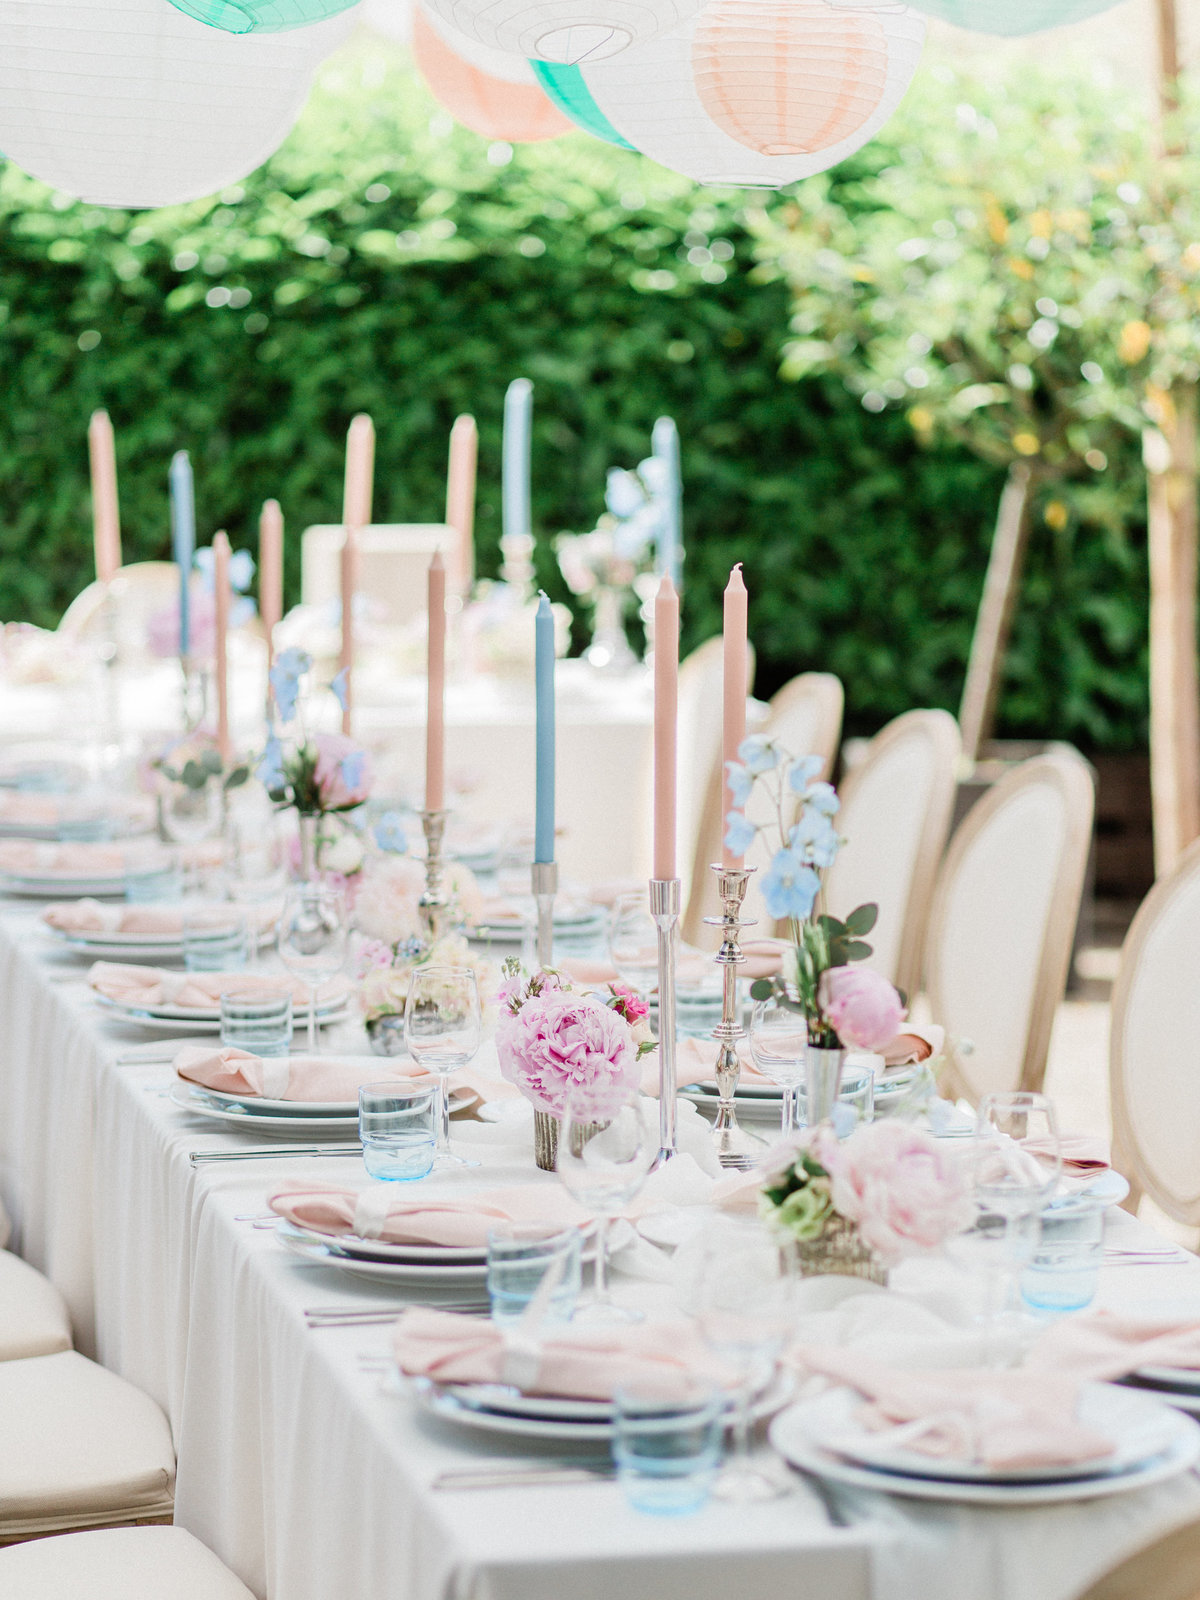 Perplexz-Wedding-Styling_Michelle-Wever-Photography-18